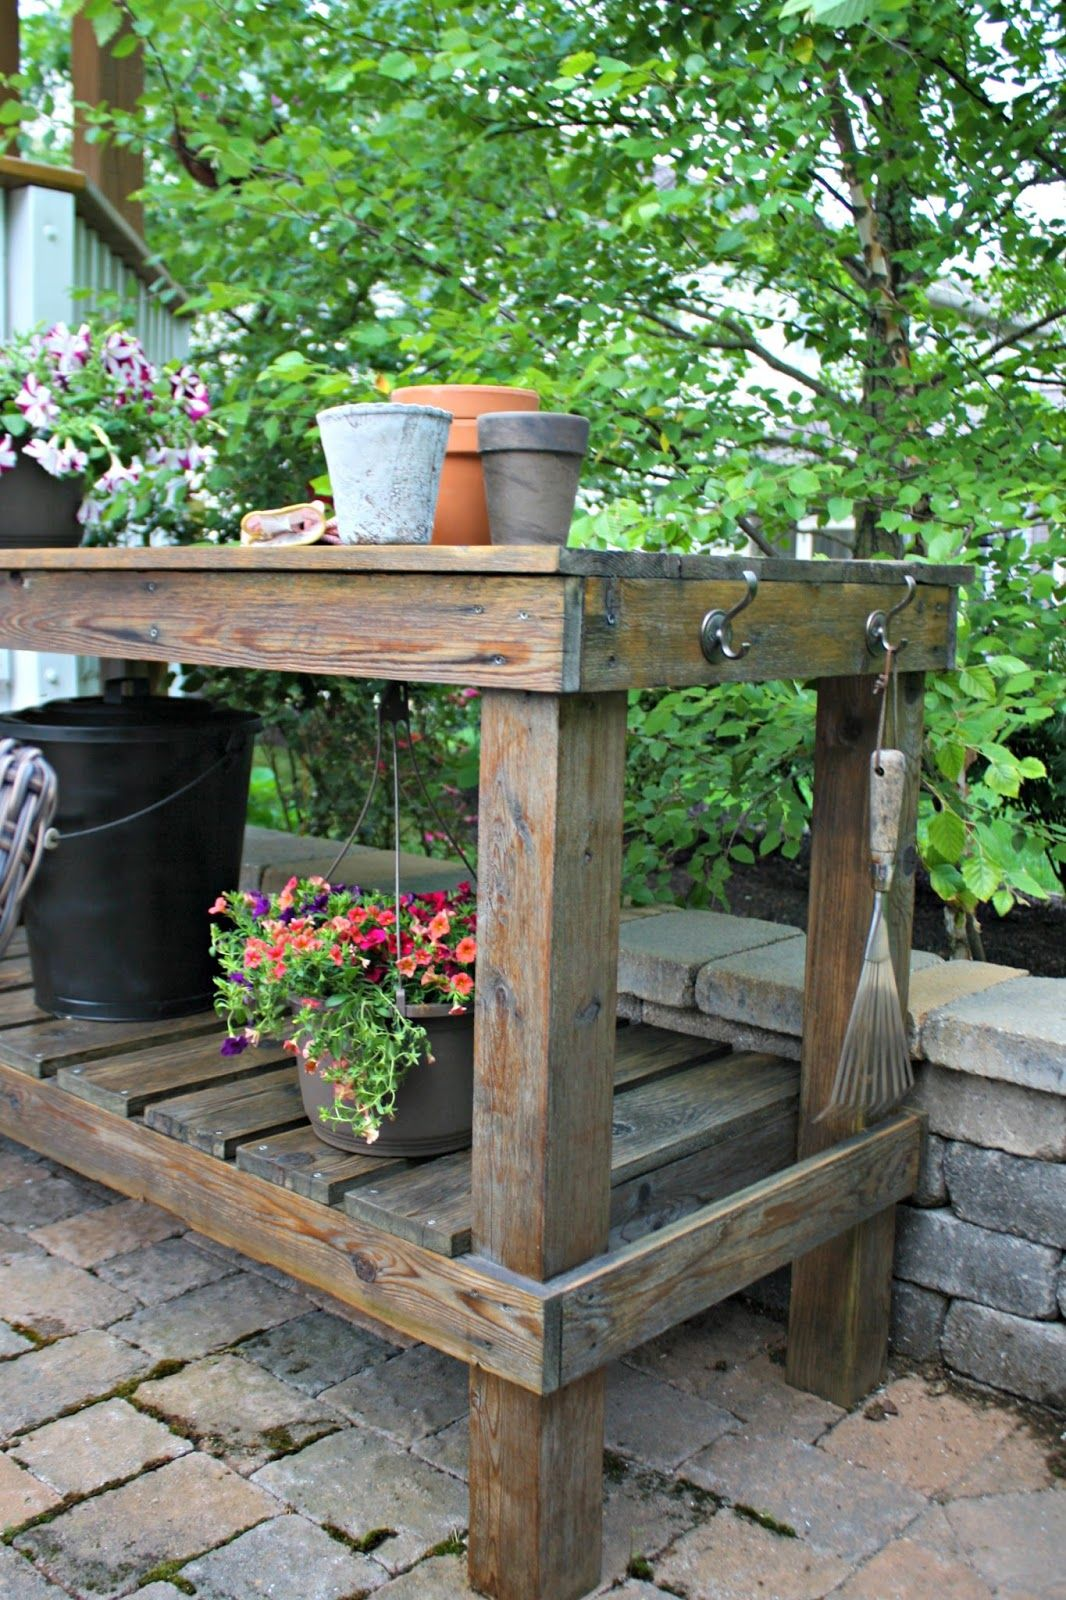 Refinishing My Future Heirloom With Images Diy Garden Table